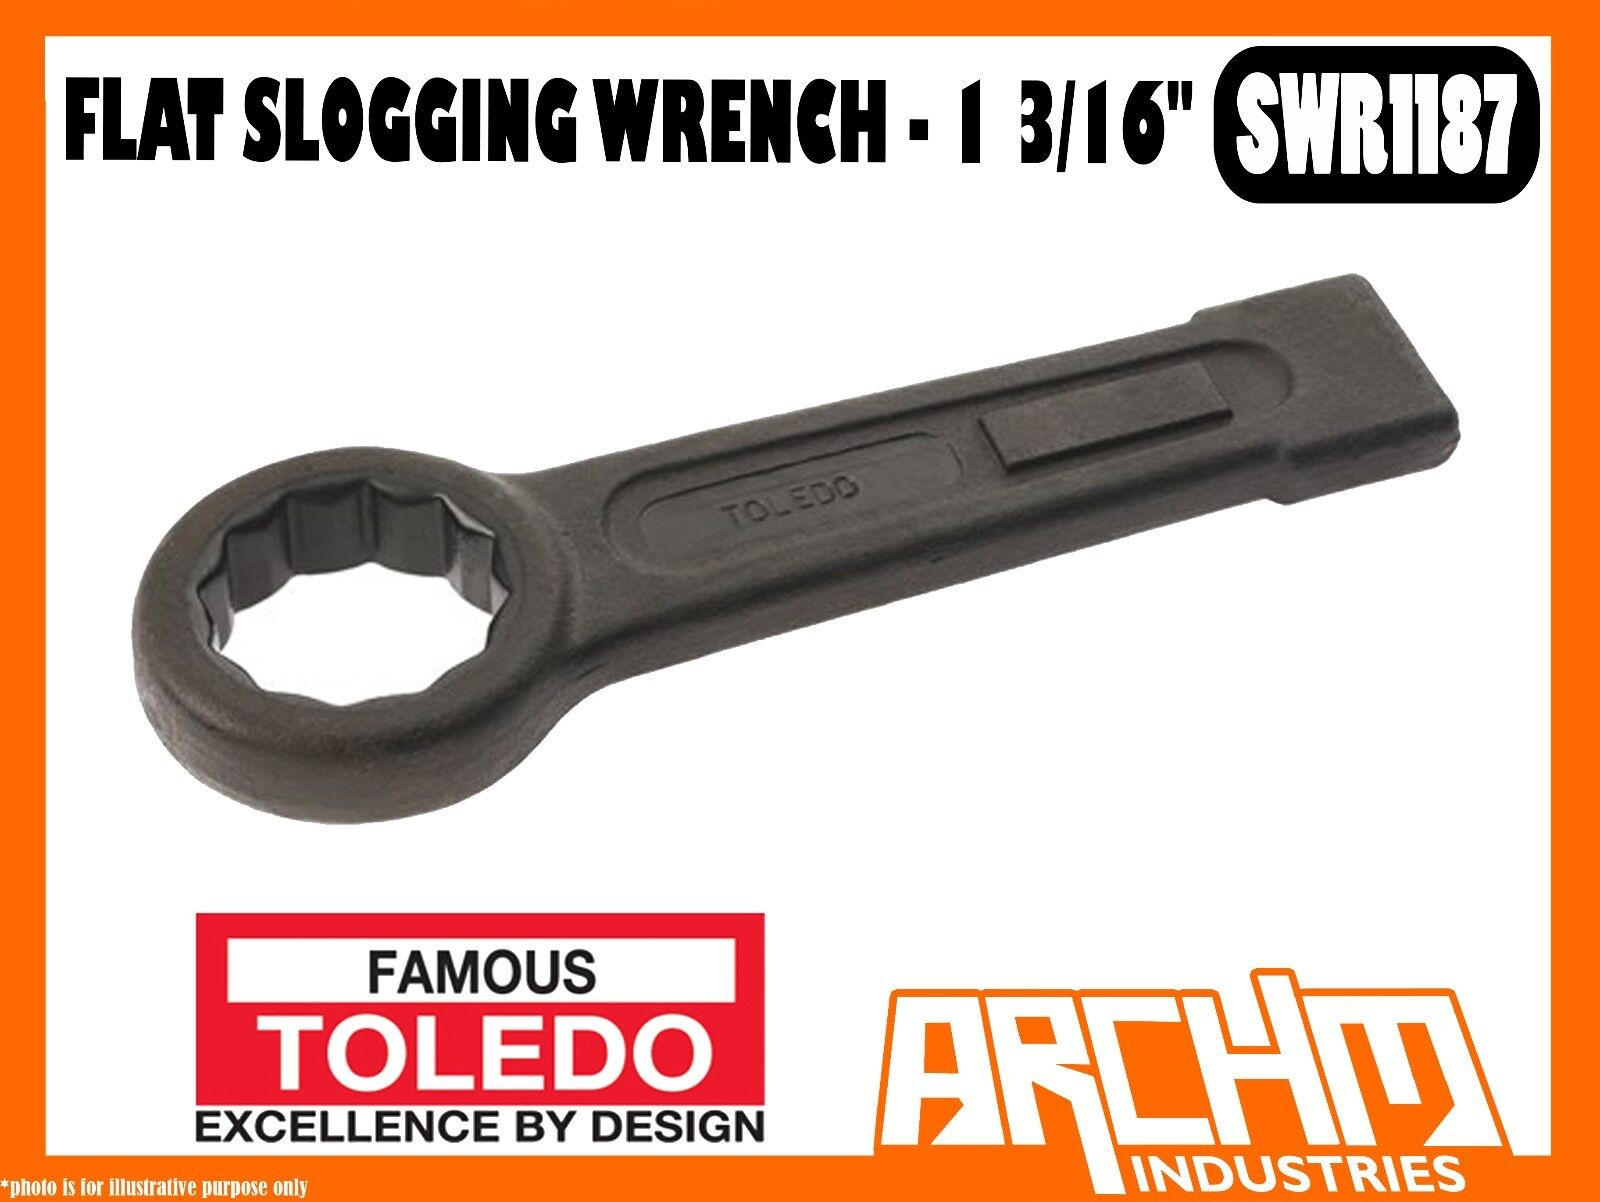 TOLEDO SWR1187 - FLAT SLOGGING WRENCH - 1 3 16  - IMPERIAL